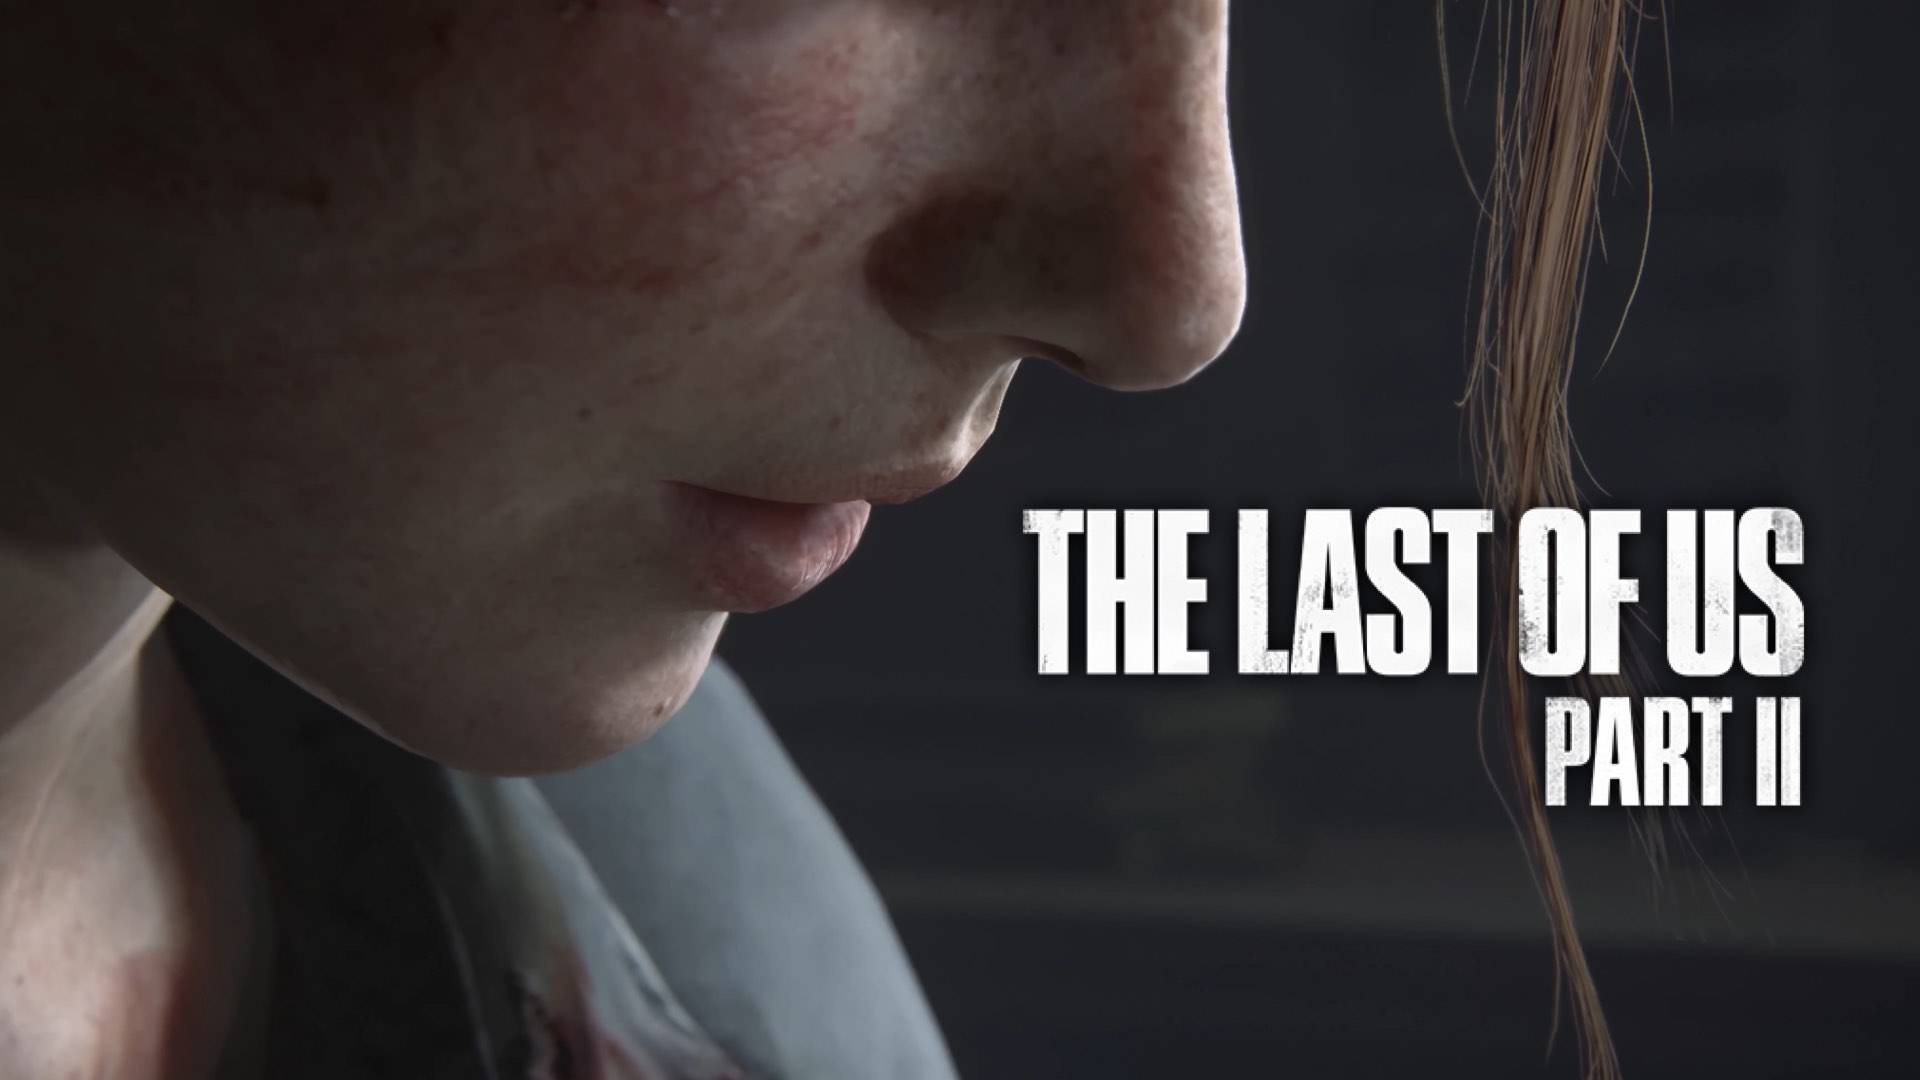 The Last of us part 2 release date gameplay